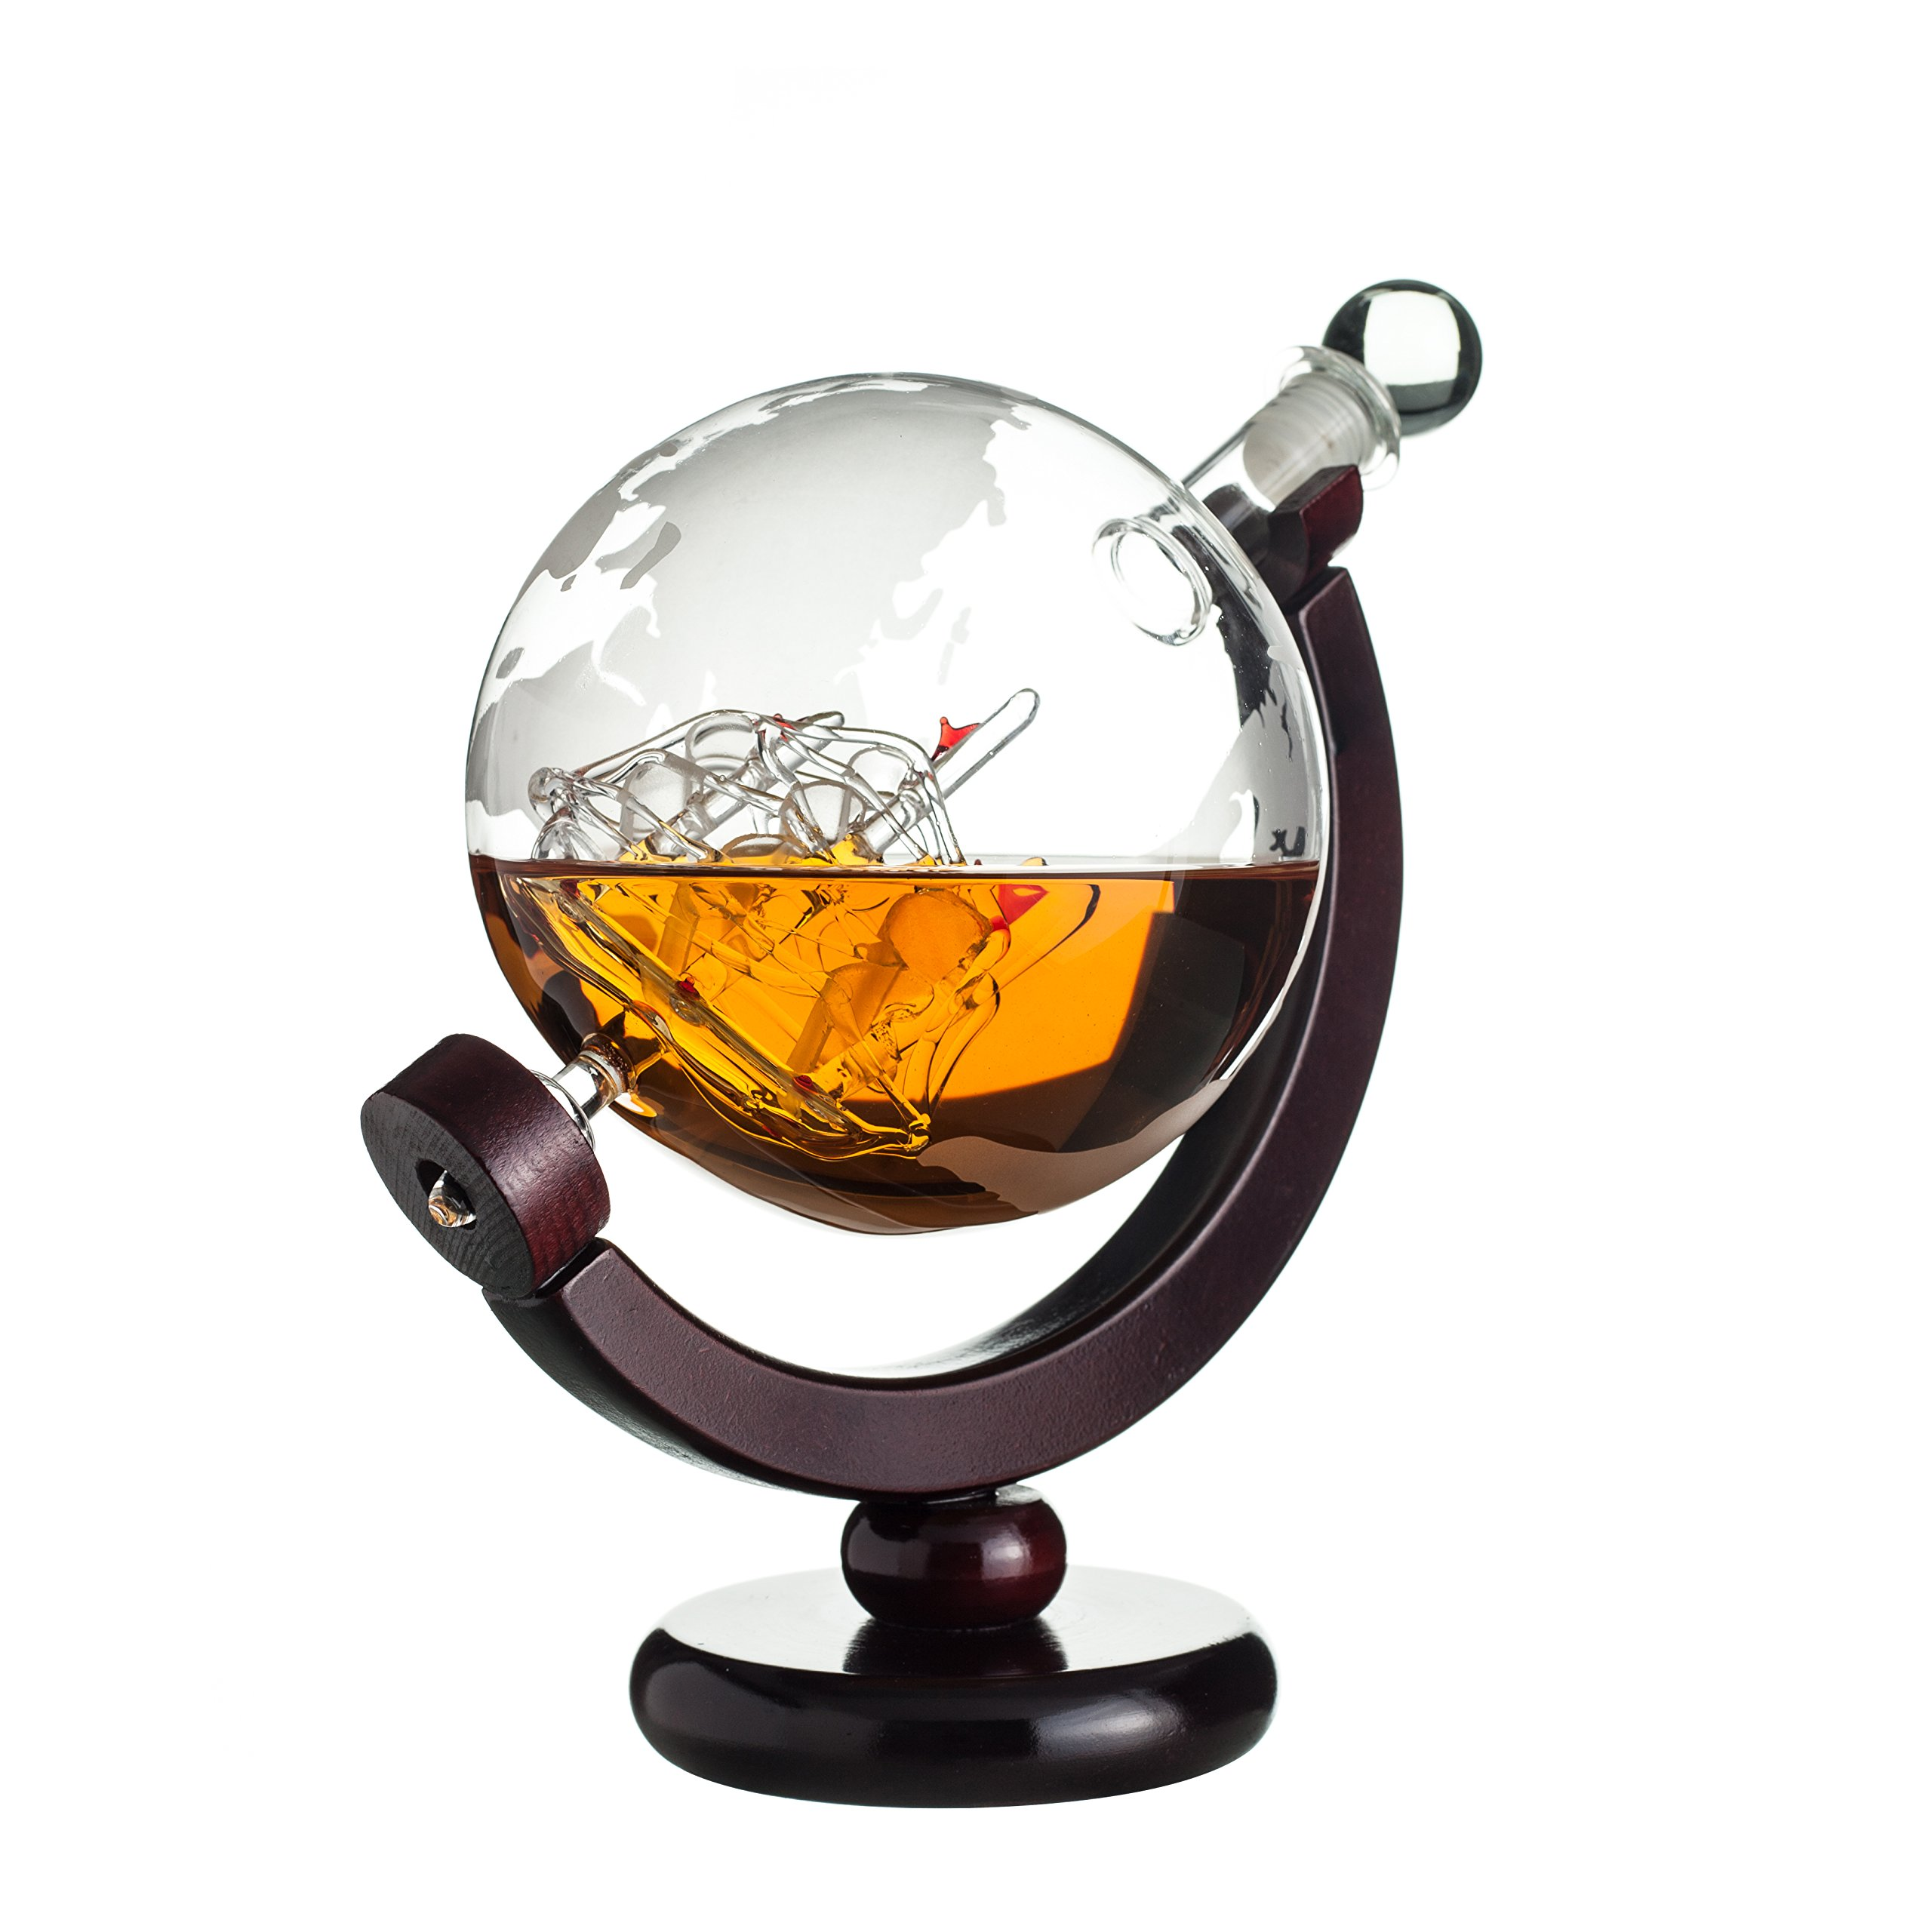 Whiskey Globe Decanter with Antique Dark Finished Wood Stand Bar Funnel 850ml Perfect Gift Set Scotch Liquor Bourbon Wine Vodka by ERAVINO (Image #4)